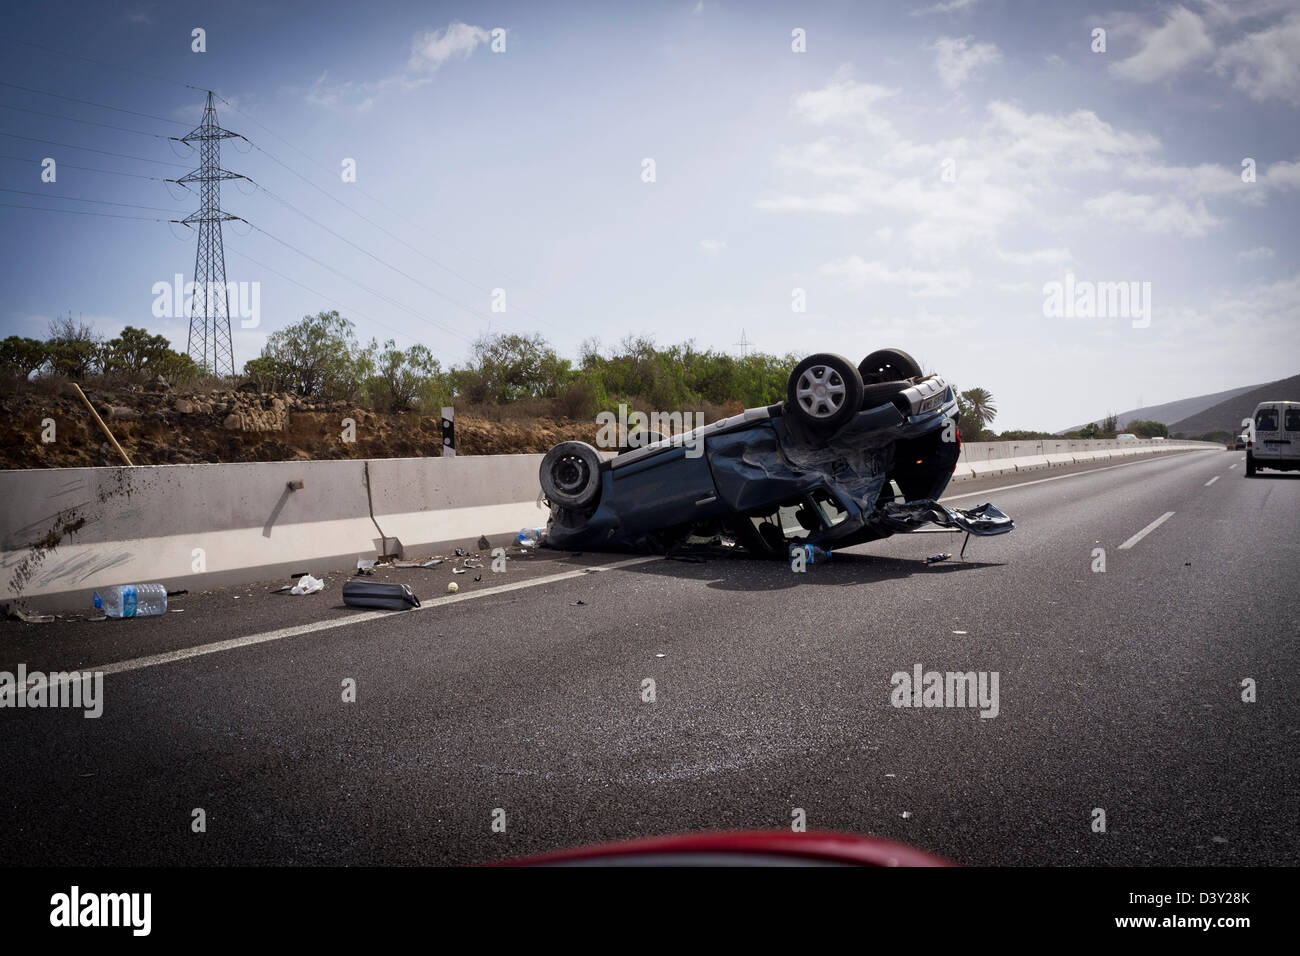 car-crash-with-car-on-its-roof-on-a-moto